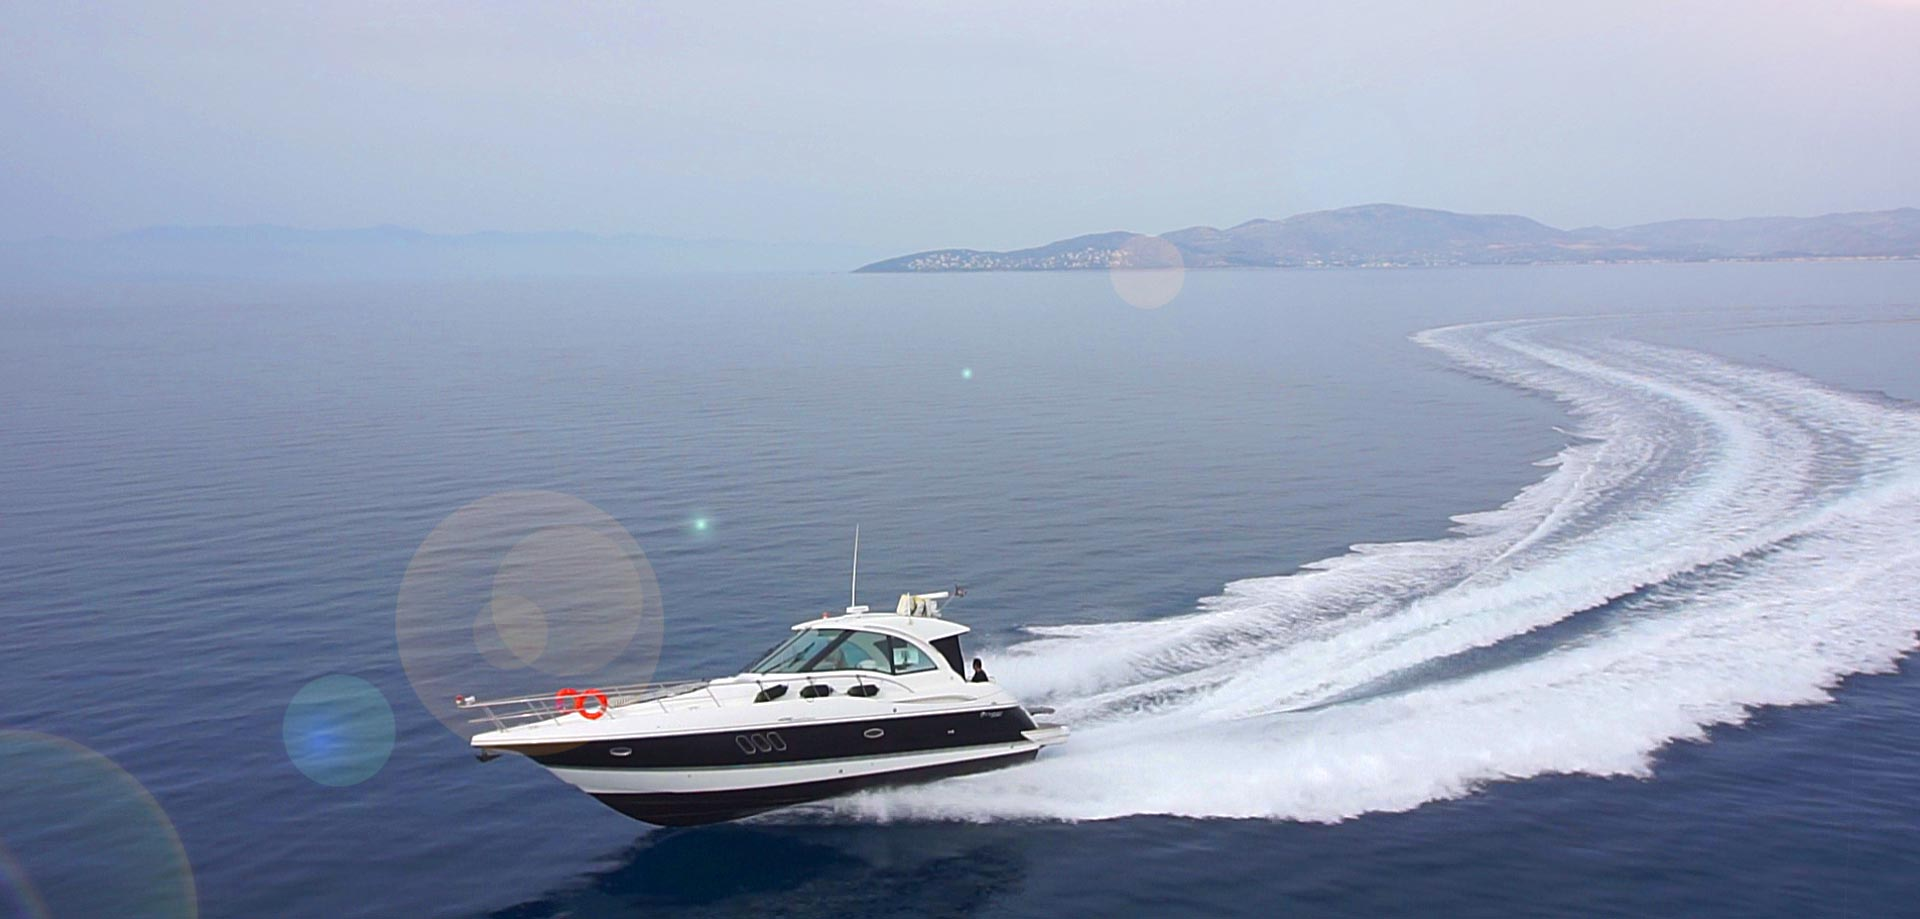 Themis iv - Motor Yacht for Charter in Greece